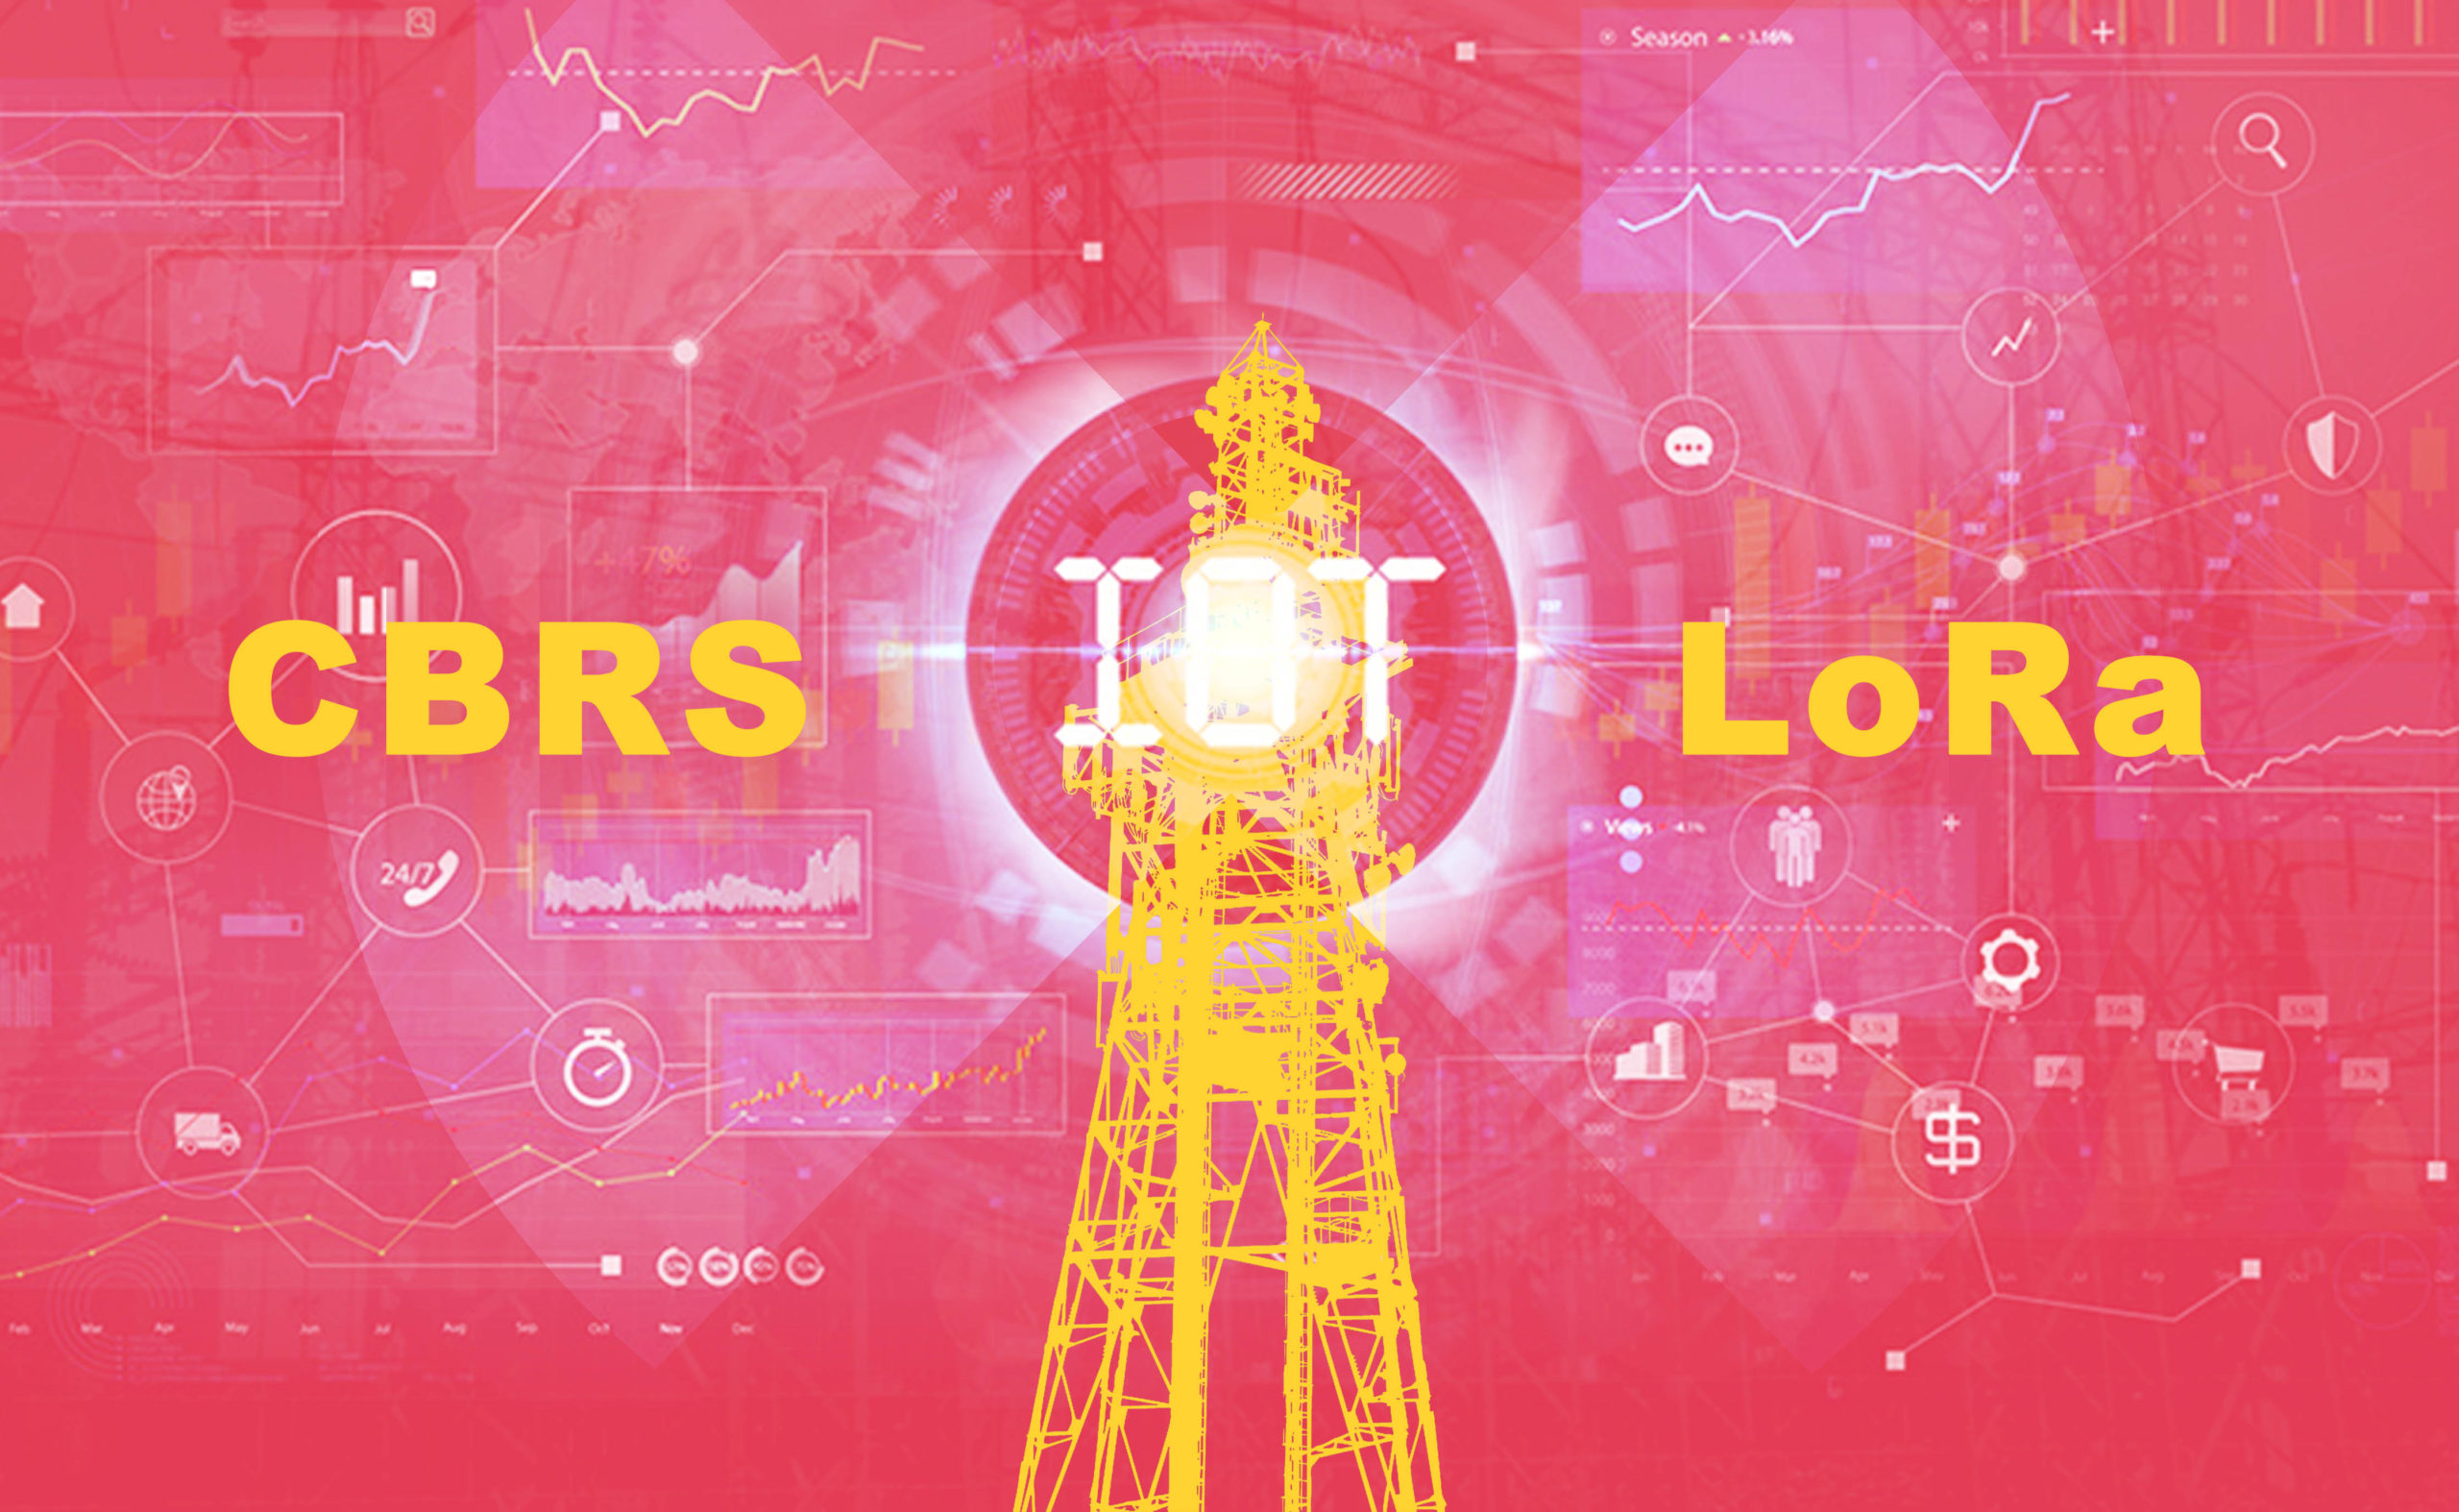 Evolving Private IoT Networks: LoRa and CBRS